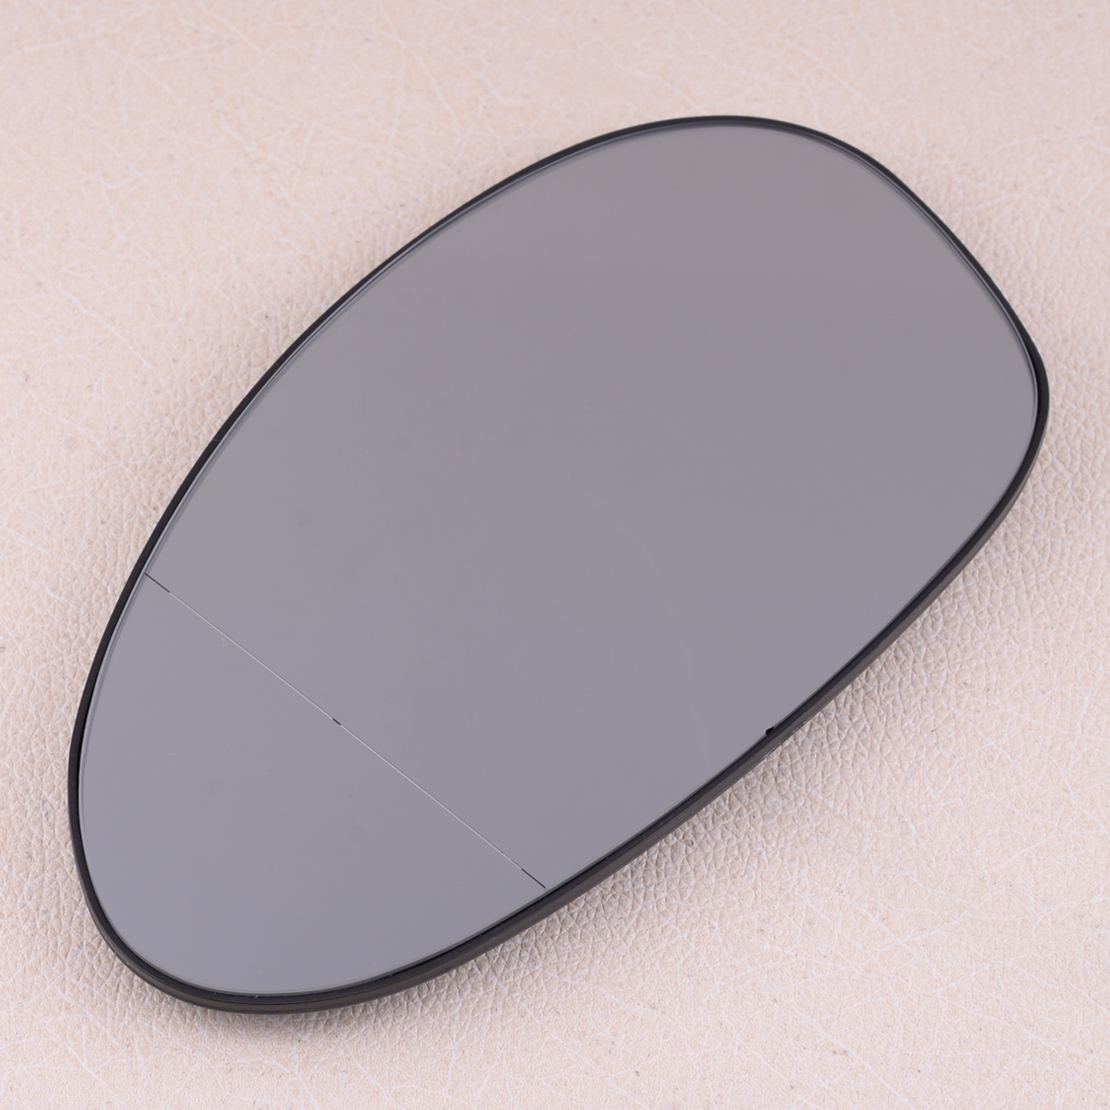 CITALL 2 Pin Left <font><b>Side</b></font> Wing Door <font><b>Mirror</b></font> Glass Heated White 51167157247 Fit for <font><b>BMW</b></font> E82 E90 E91 E92 3-Series <font><b>E46</b></font> <font><b>M3</b></font> E85 Z4 E86 image